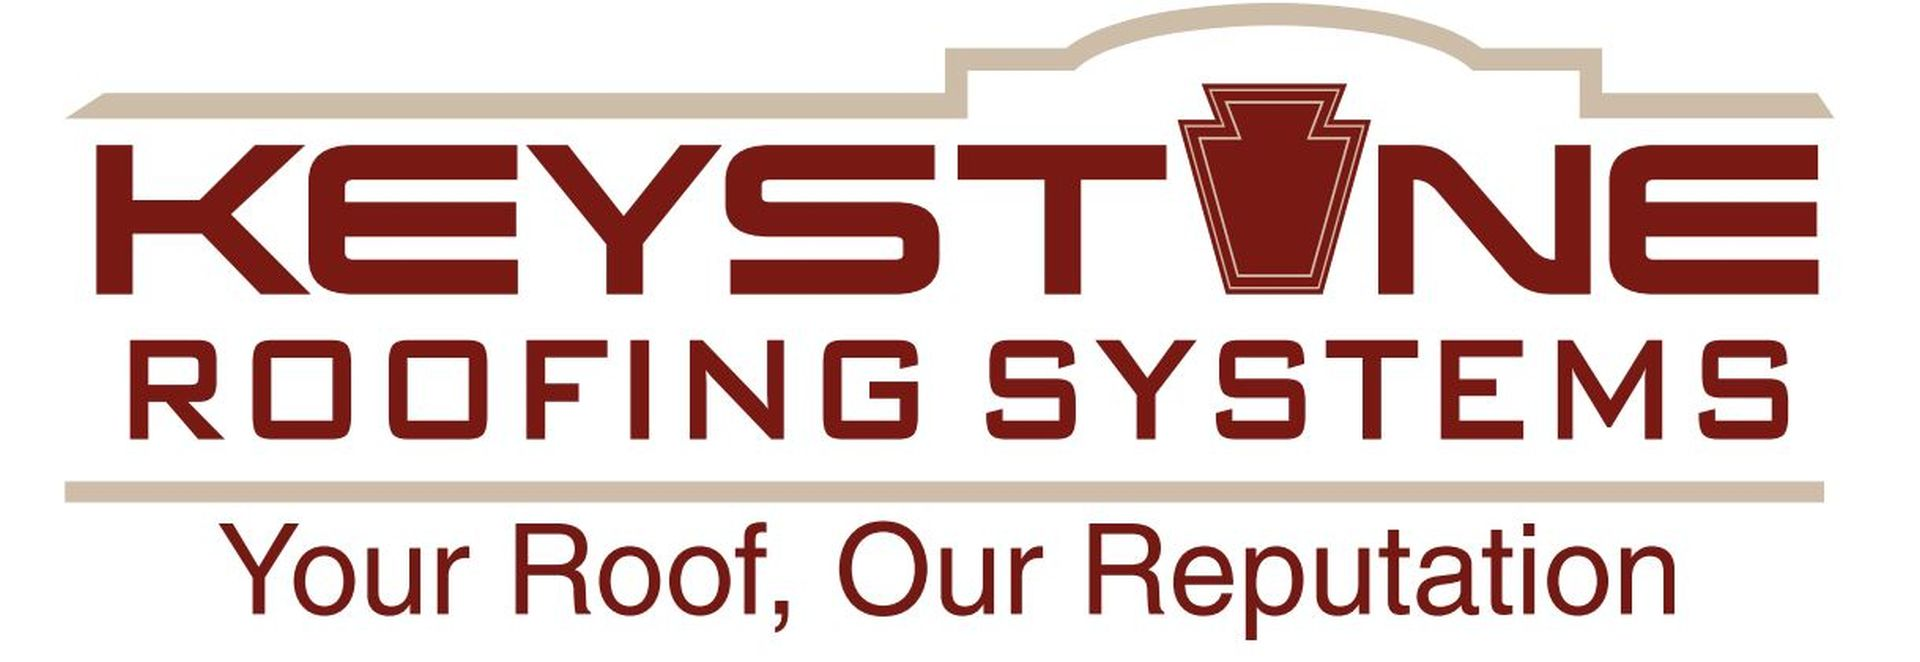 Keystone Roofing Systems